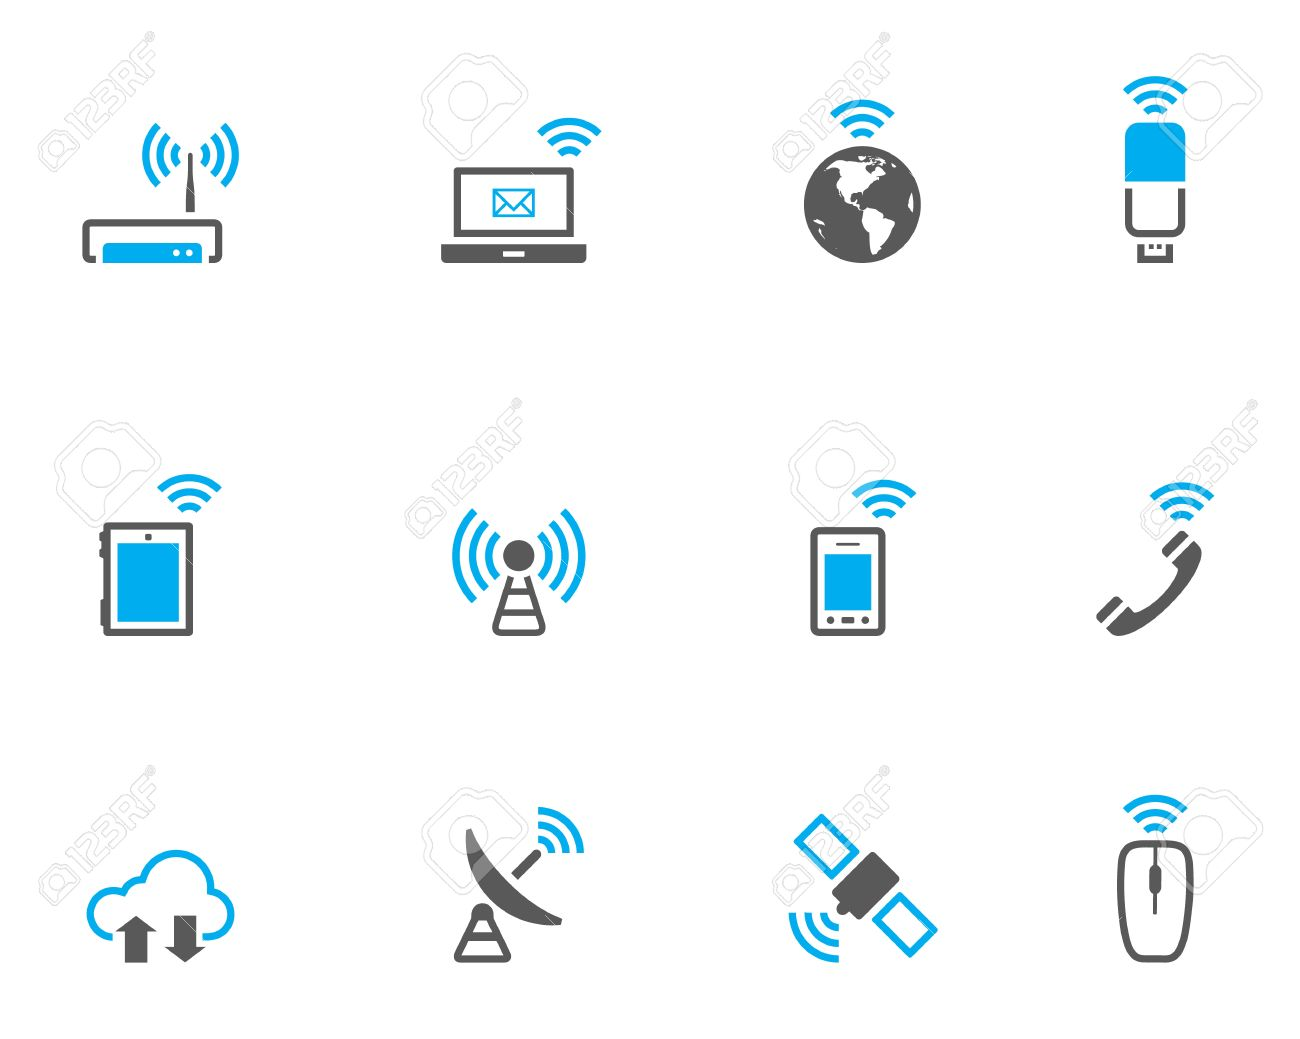 Wireless technology icon set in duo tone color style. Stock Vector - 17233894